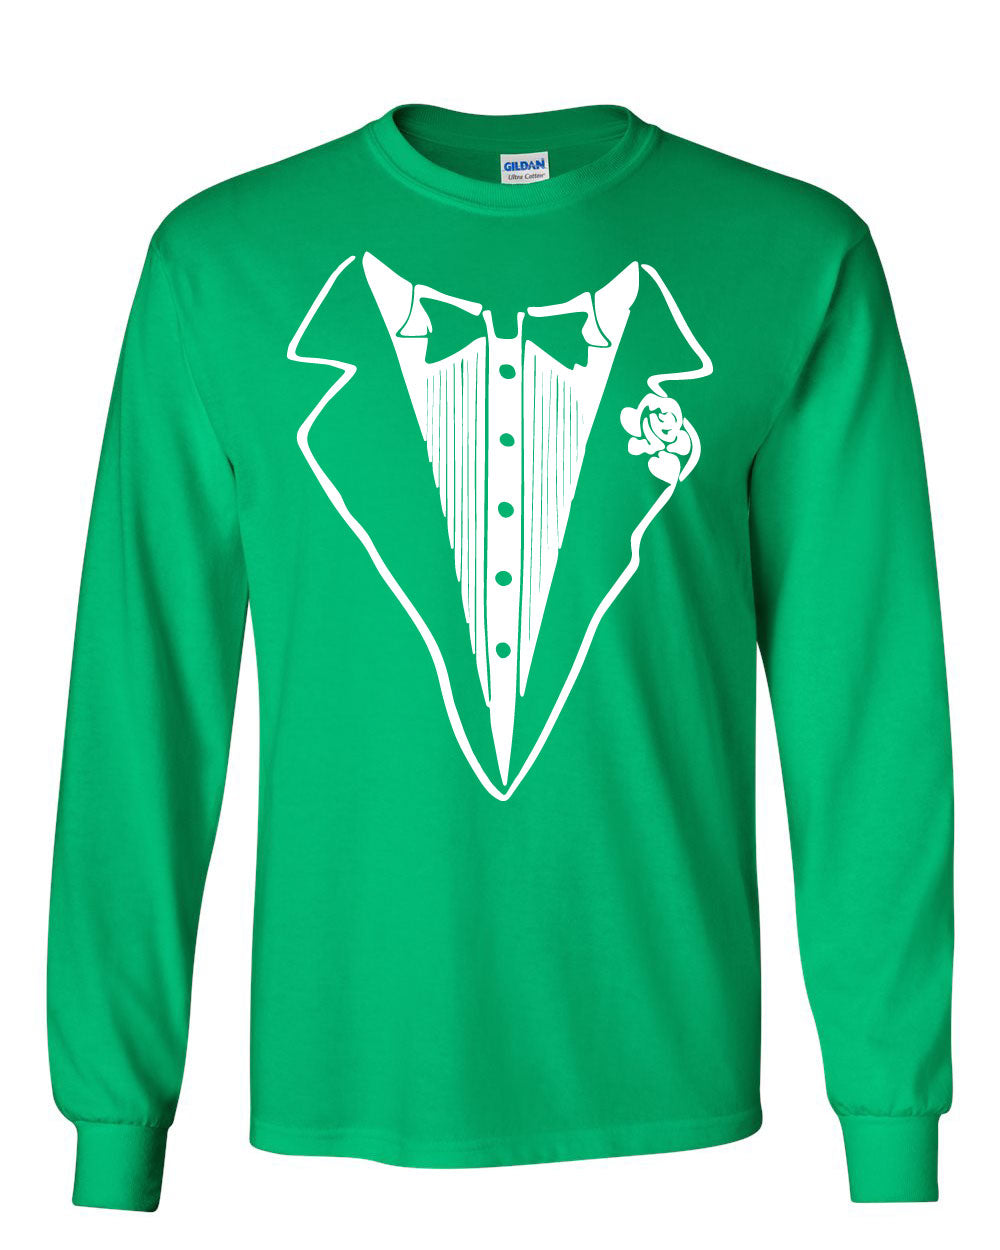 Tuxedo Funny Long Sleeve T-Shirt Tux Bachelor Party Wedding Groom | eBay